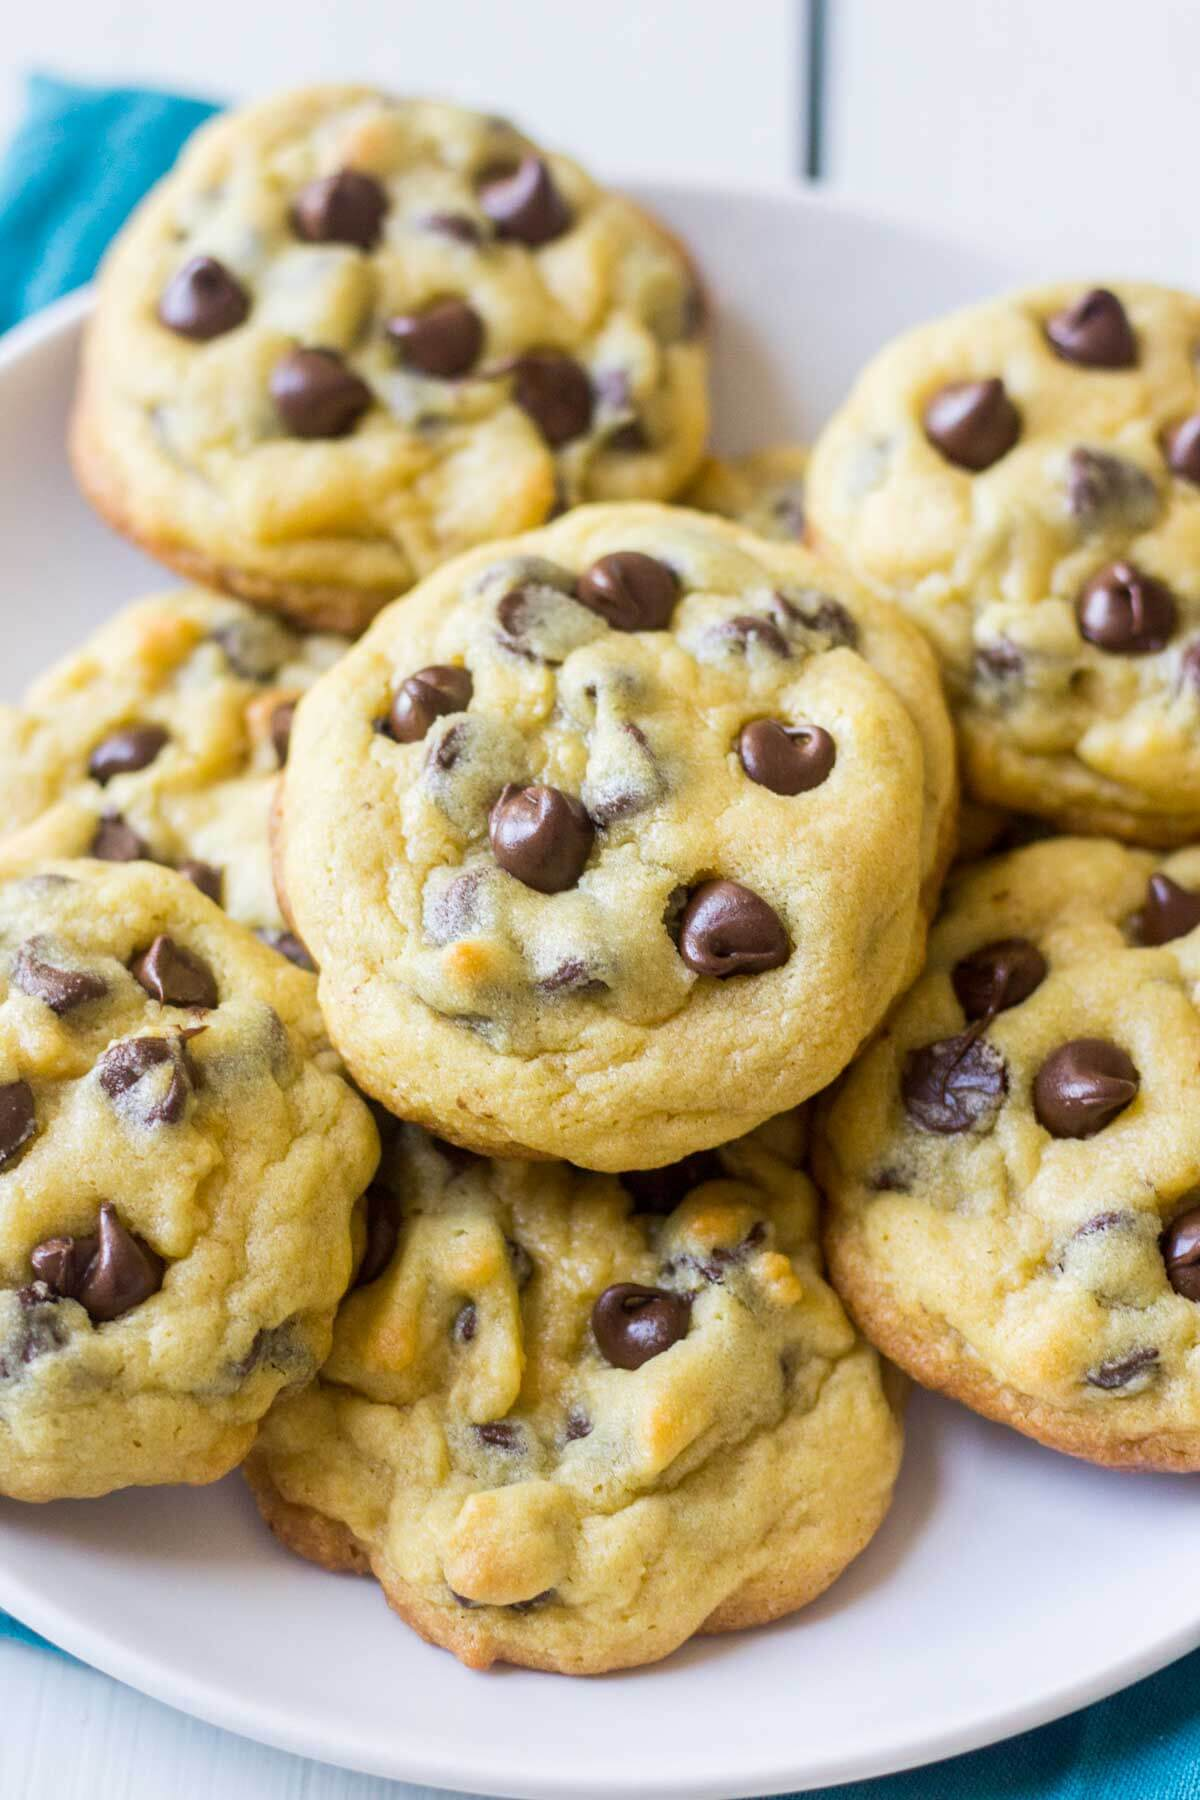 Soft and chewy, these chocolate chip pudding cookies are the best cookie recipe you will ever make! They use the typical cookie ingredients (flour, sugar, butter etc) but they have a secret ingredient: pudding mix. The mix keeps them soft for days and all of the chocolate chip will melt in your mouth. Freeze the cookie dough or baked cookies for months so you have a perfect chocolate chip cookie when you need it!